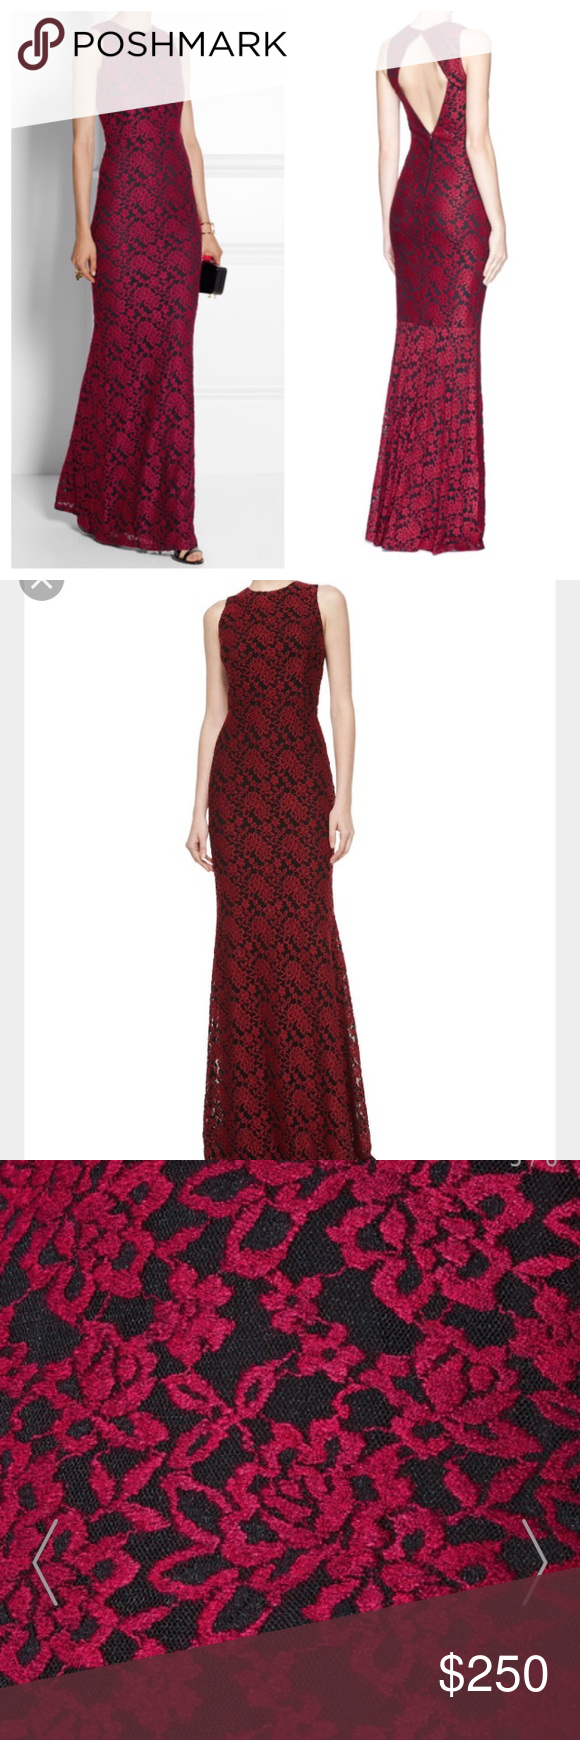 Alice olivia embroidered floral lace gown dress nwt alice olivia